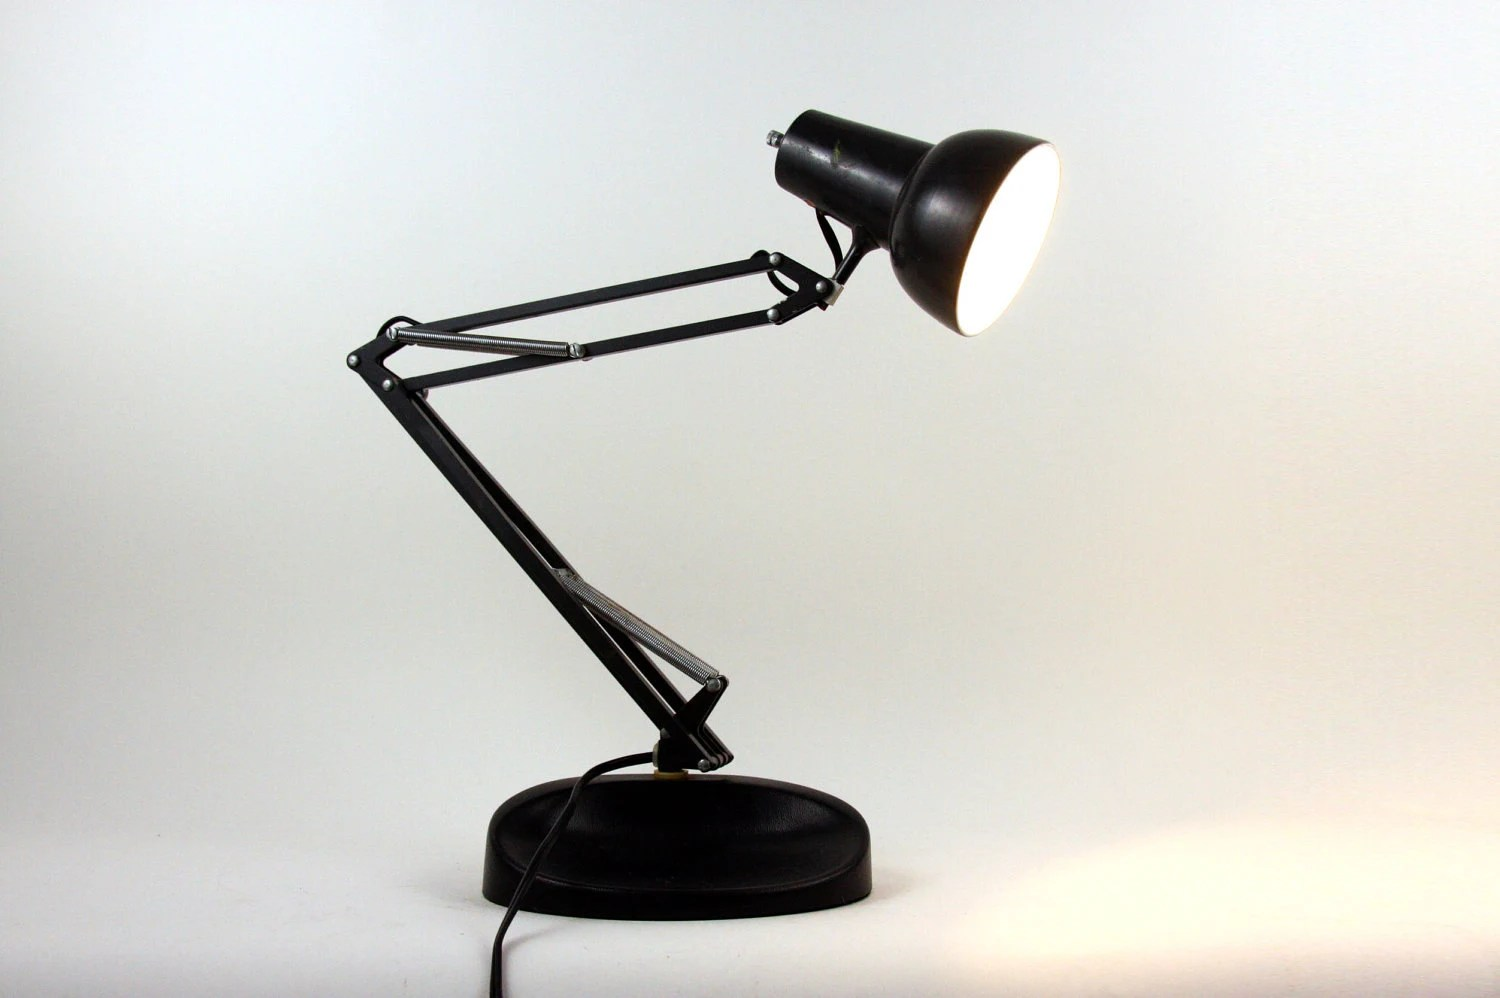 Pixar Desk Lamp Vintage Norwegian Desk Lamp Swing Arm Luxo Lamp